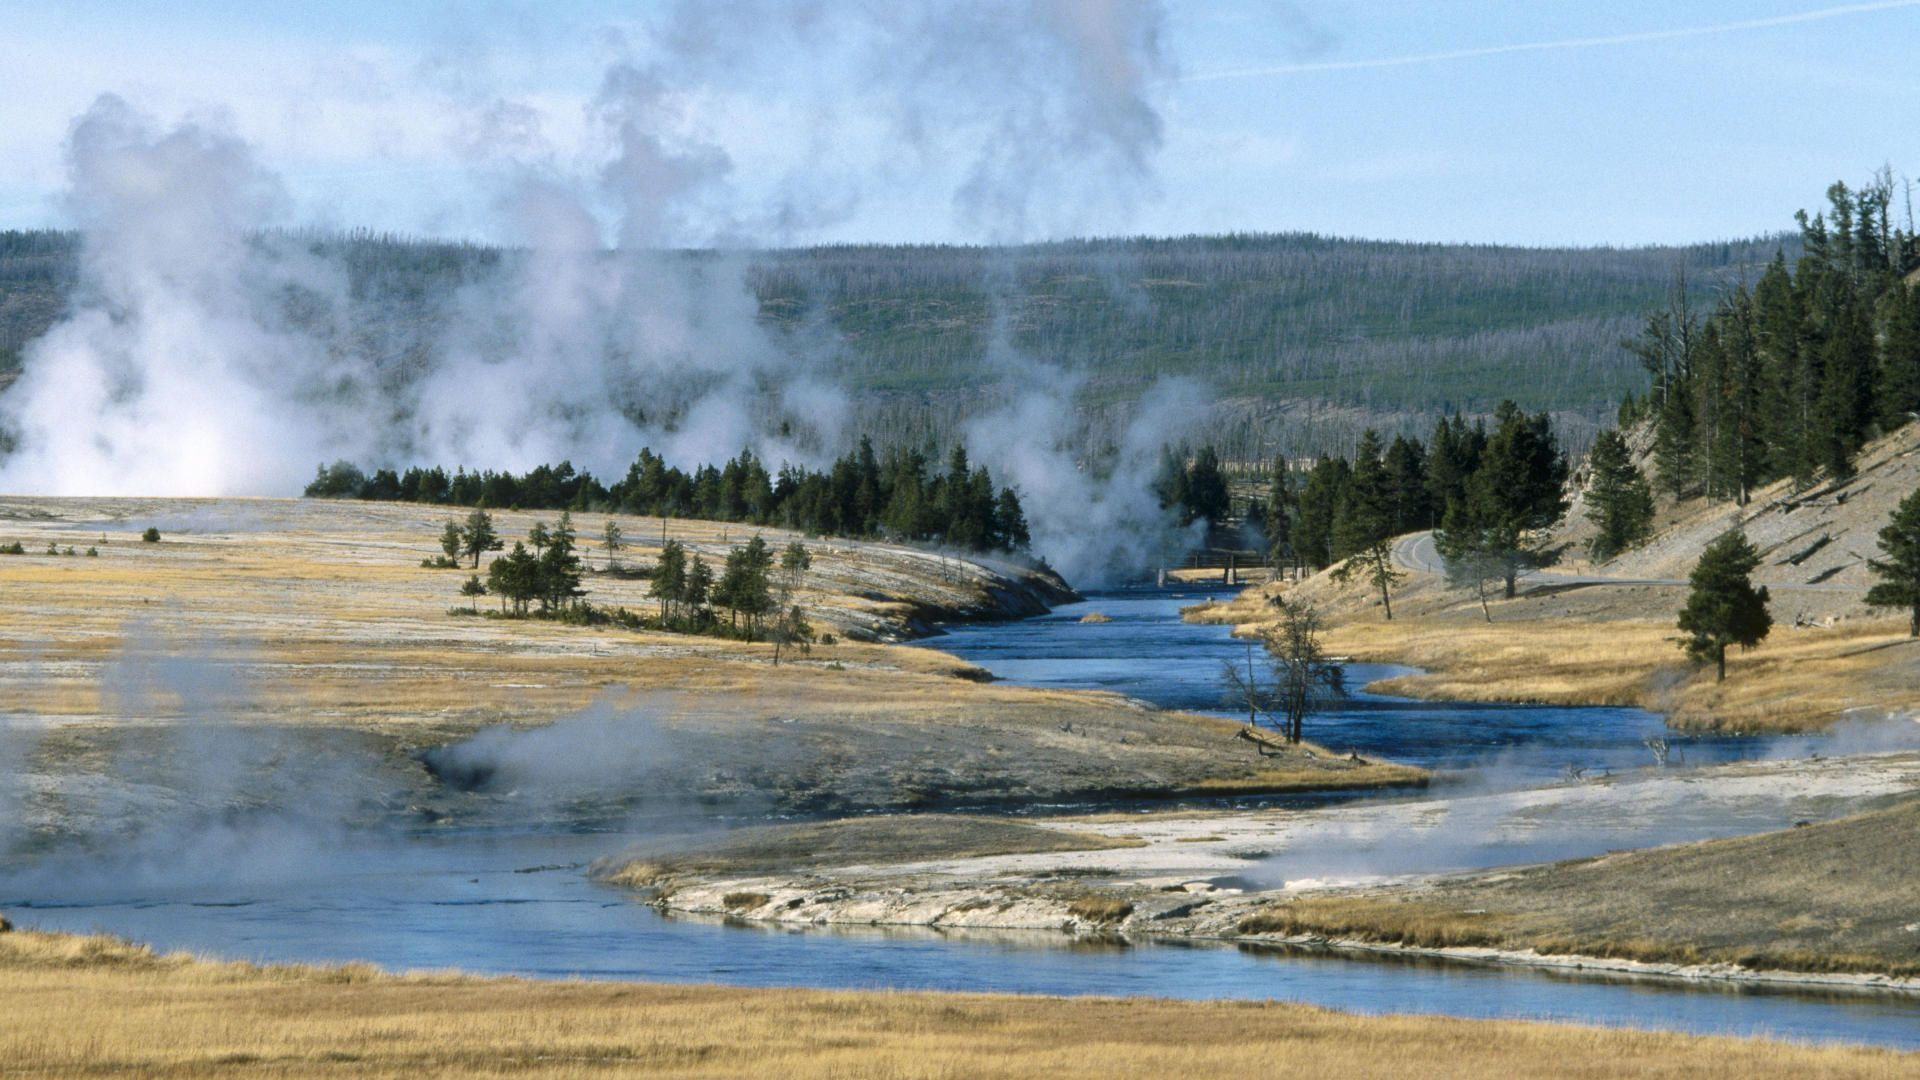 Yellowstone National Park wallpaper 89040 1920x1080